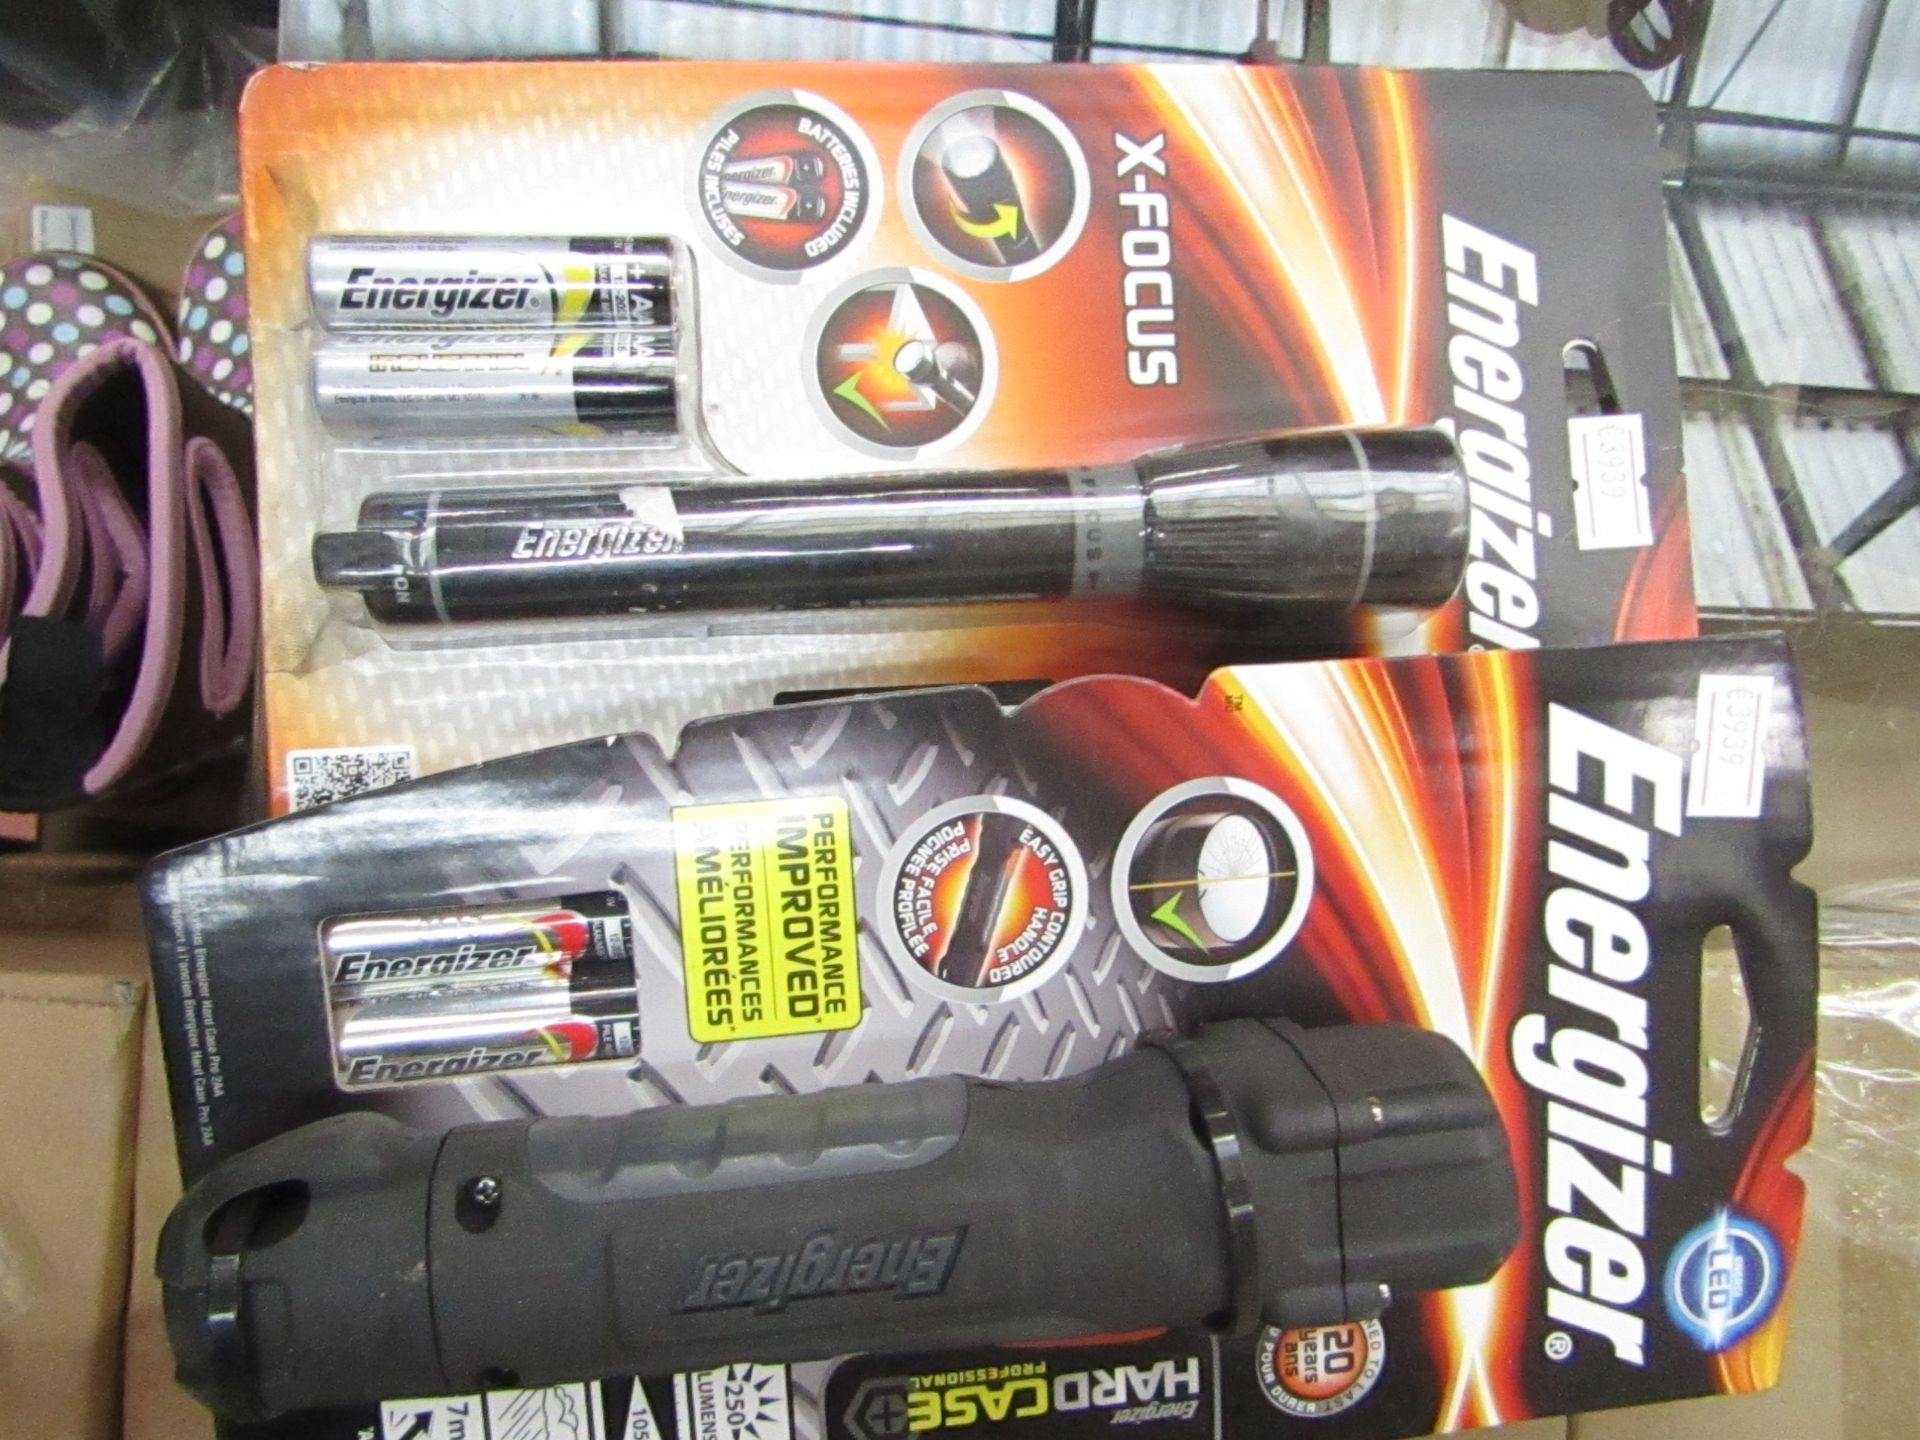 Lot 45 - 2 items being 1 x Energizer Hard Case professional LED torch & 1 x Energizer X Focus Torch both new